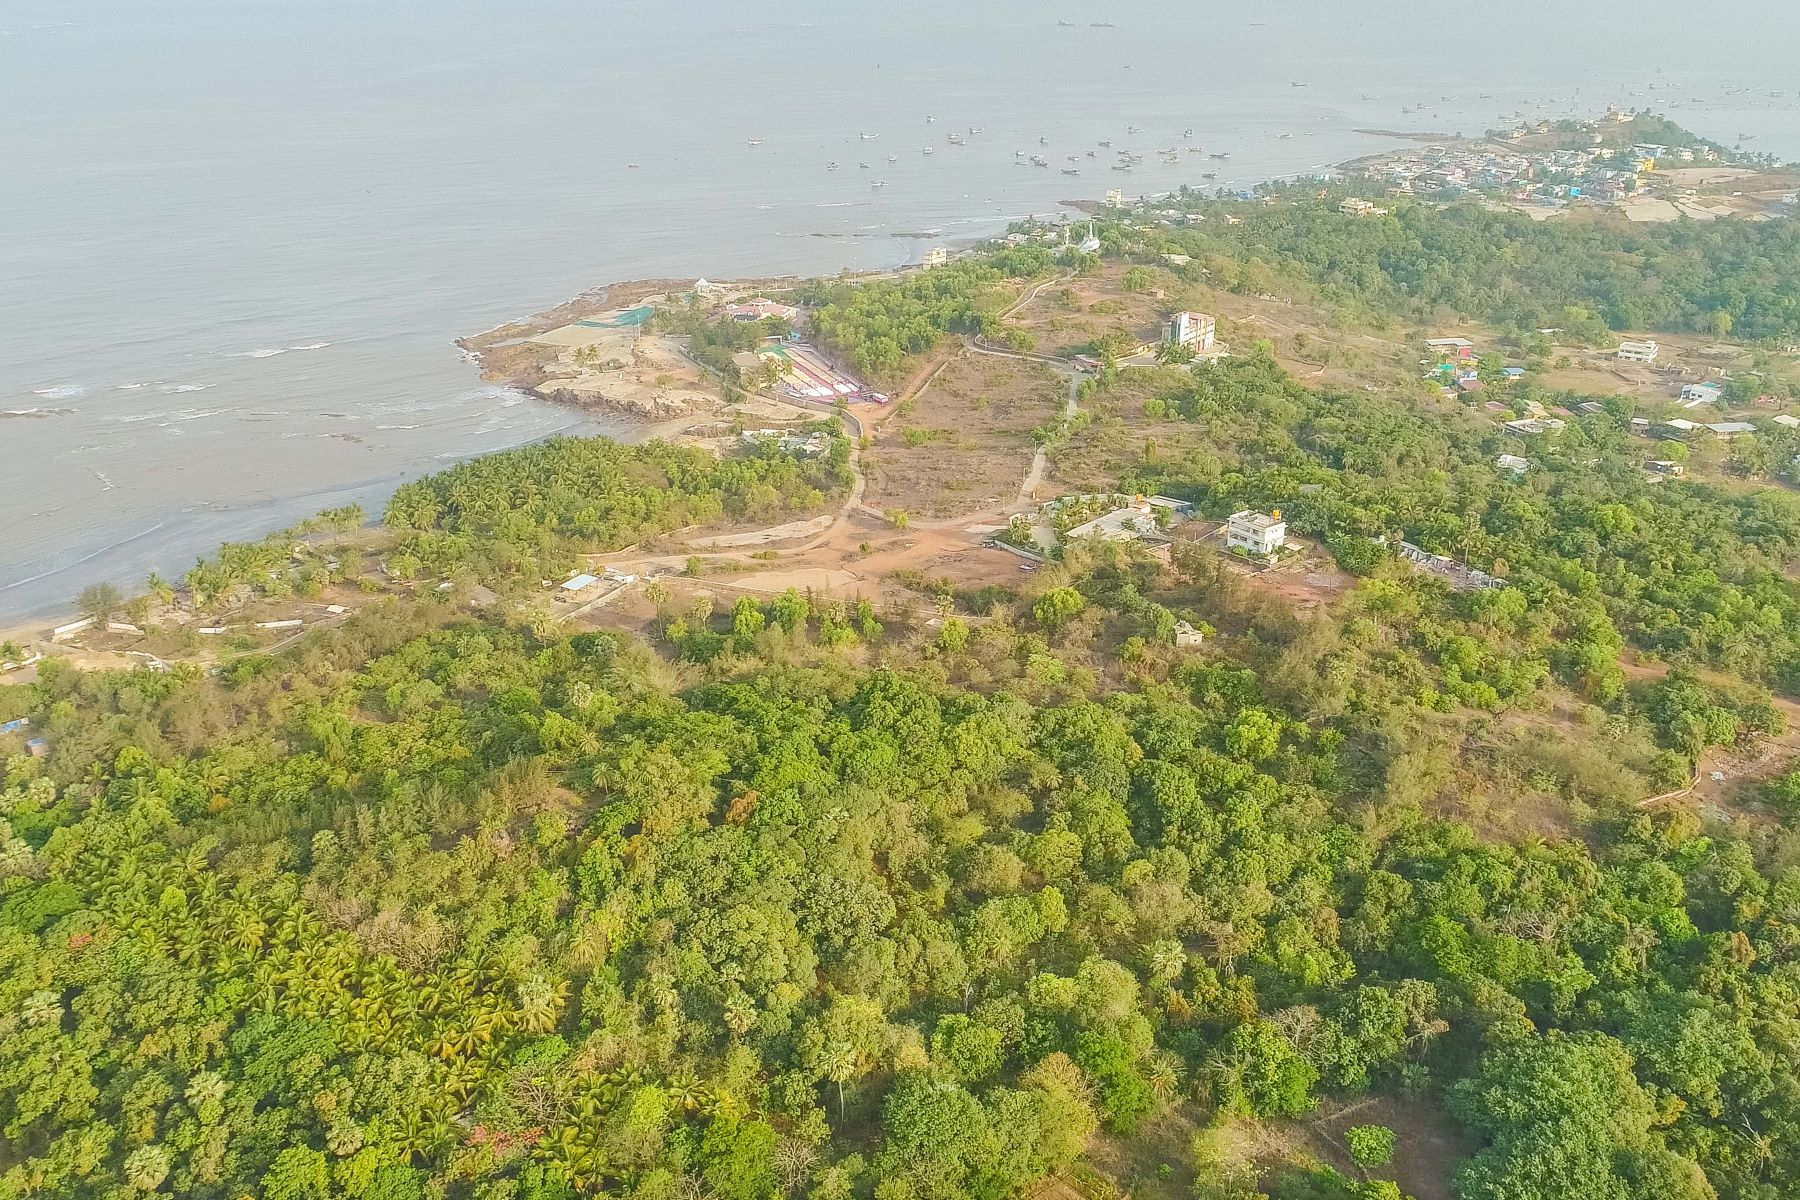 Terreno por un Venta en Beachfront land parcel in Gorai-Uttan Mumbai, Maharashtra 401106 India